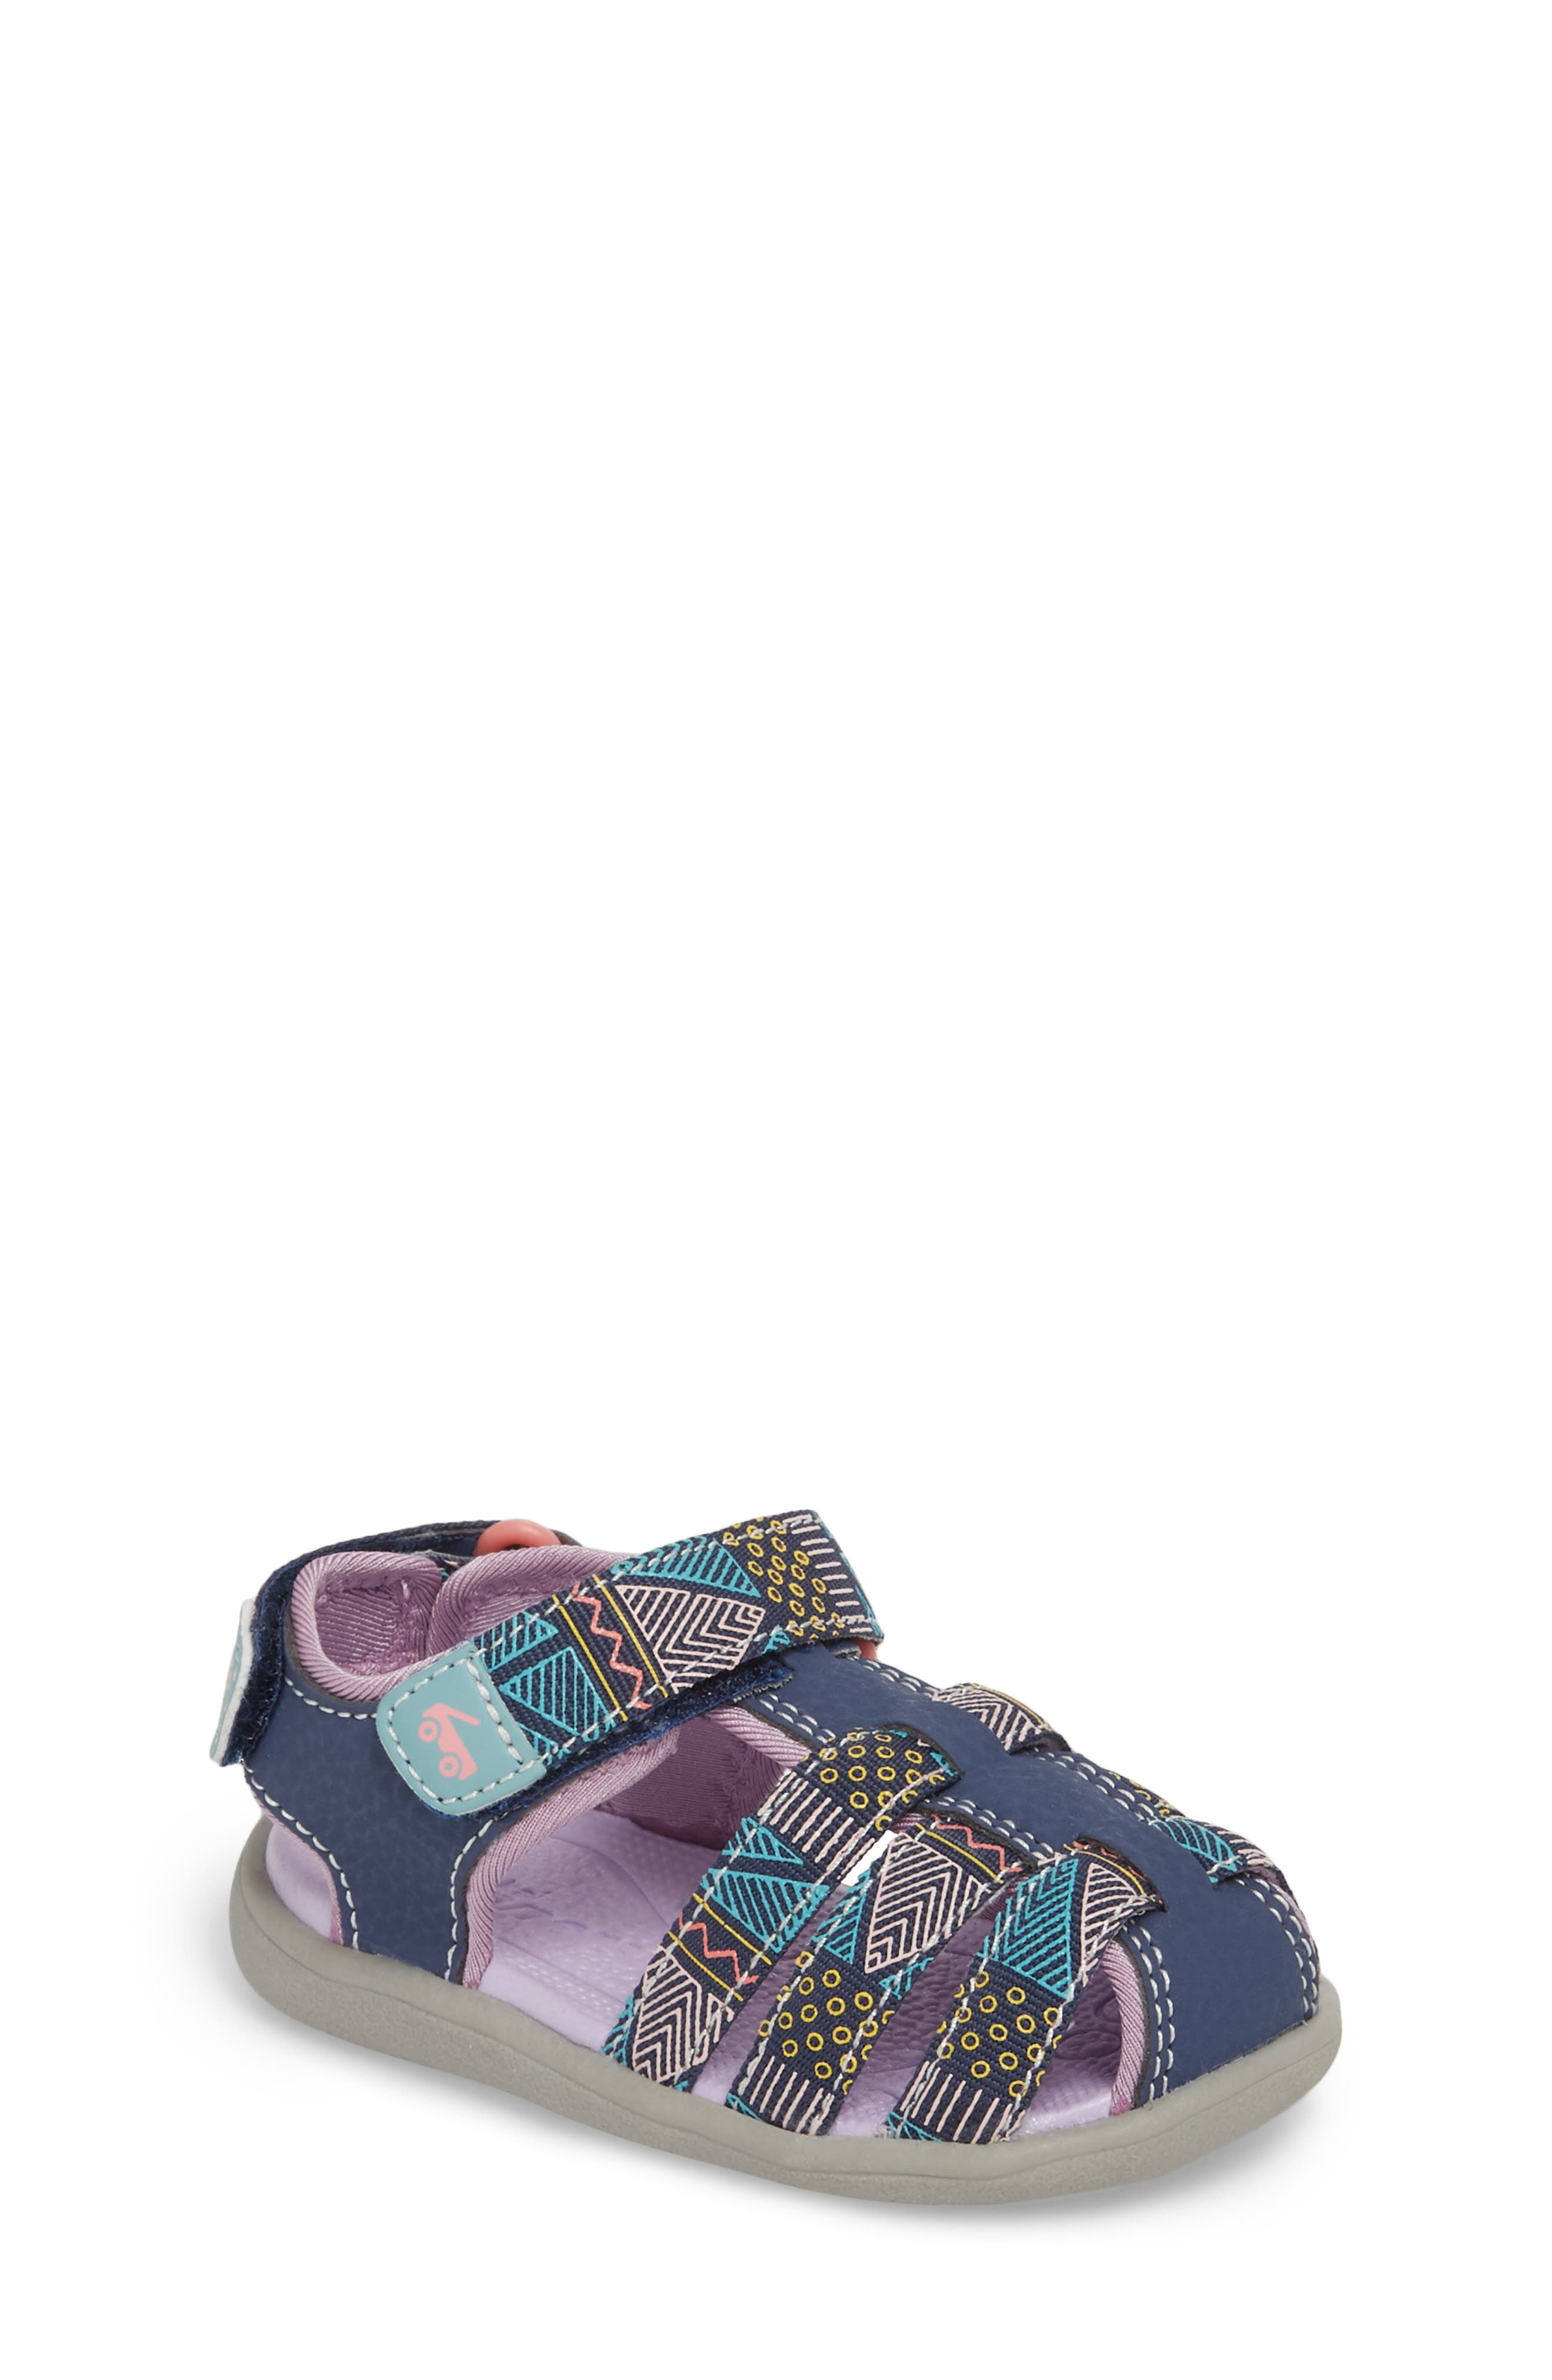 Alternate Image 1 Selected - See Kai Run Paley Fisherman Sandal (Baby, Walker & Toddler)